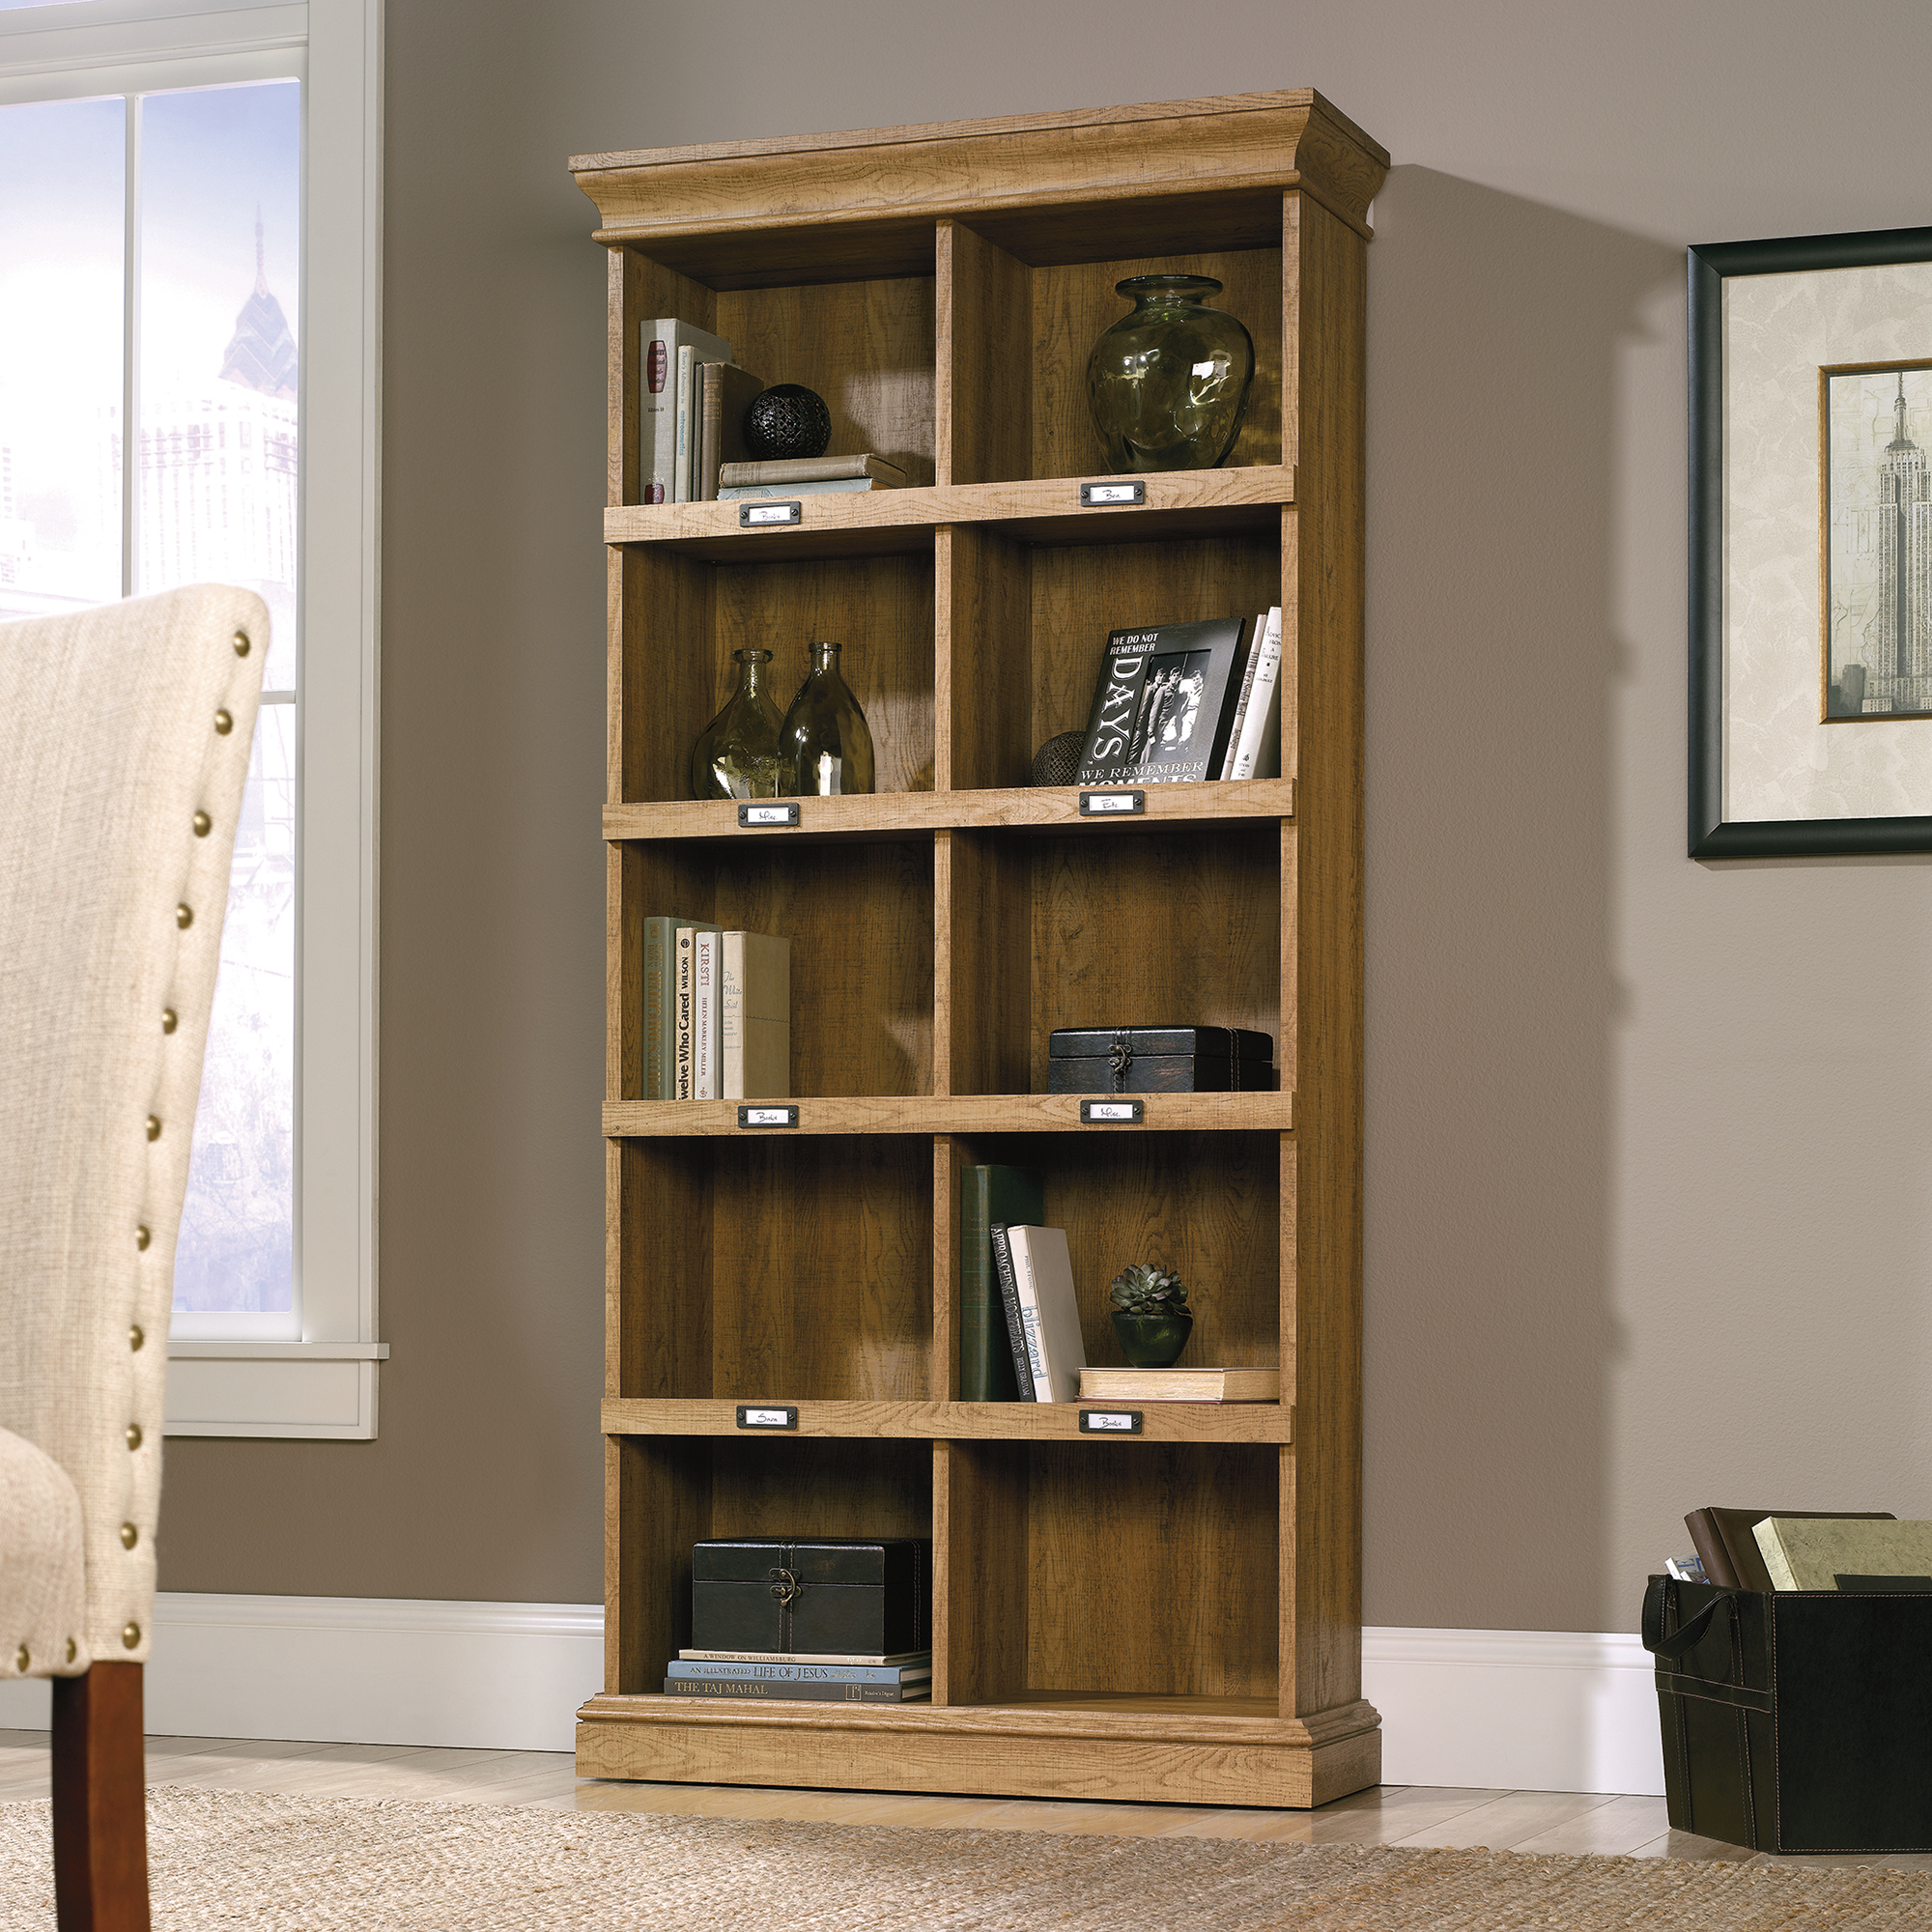 Sauder Barrister Lane Tall Bookcase 414725  The